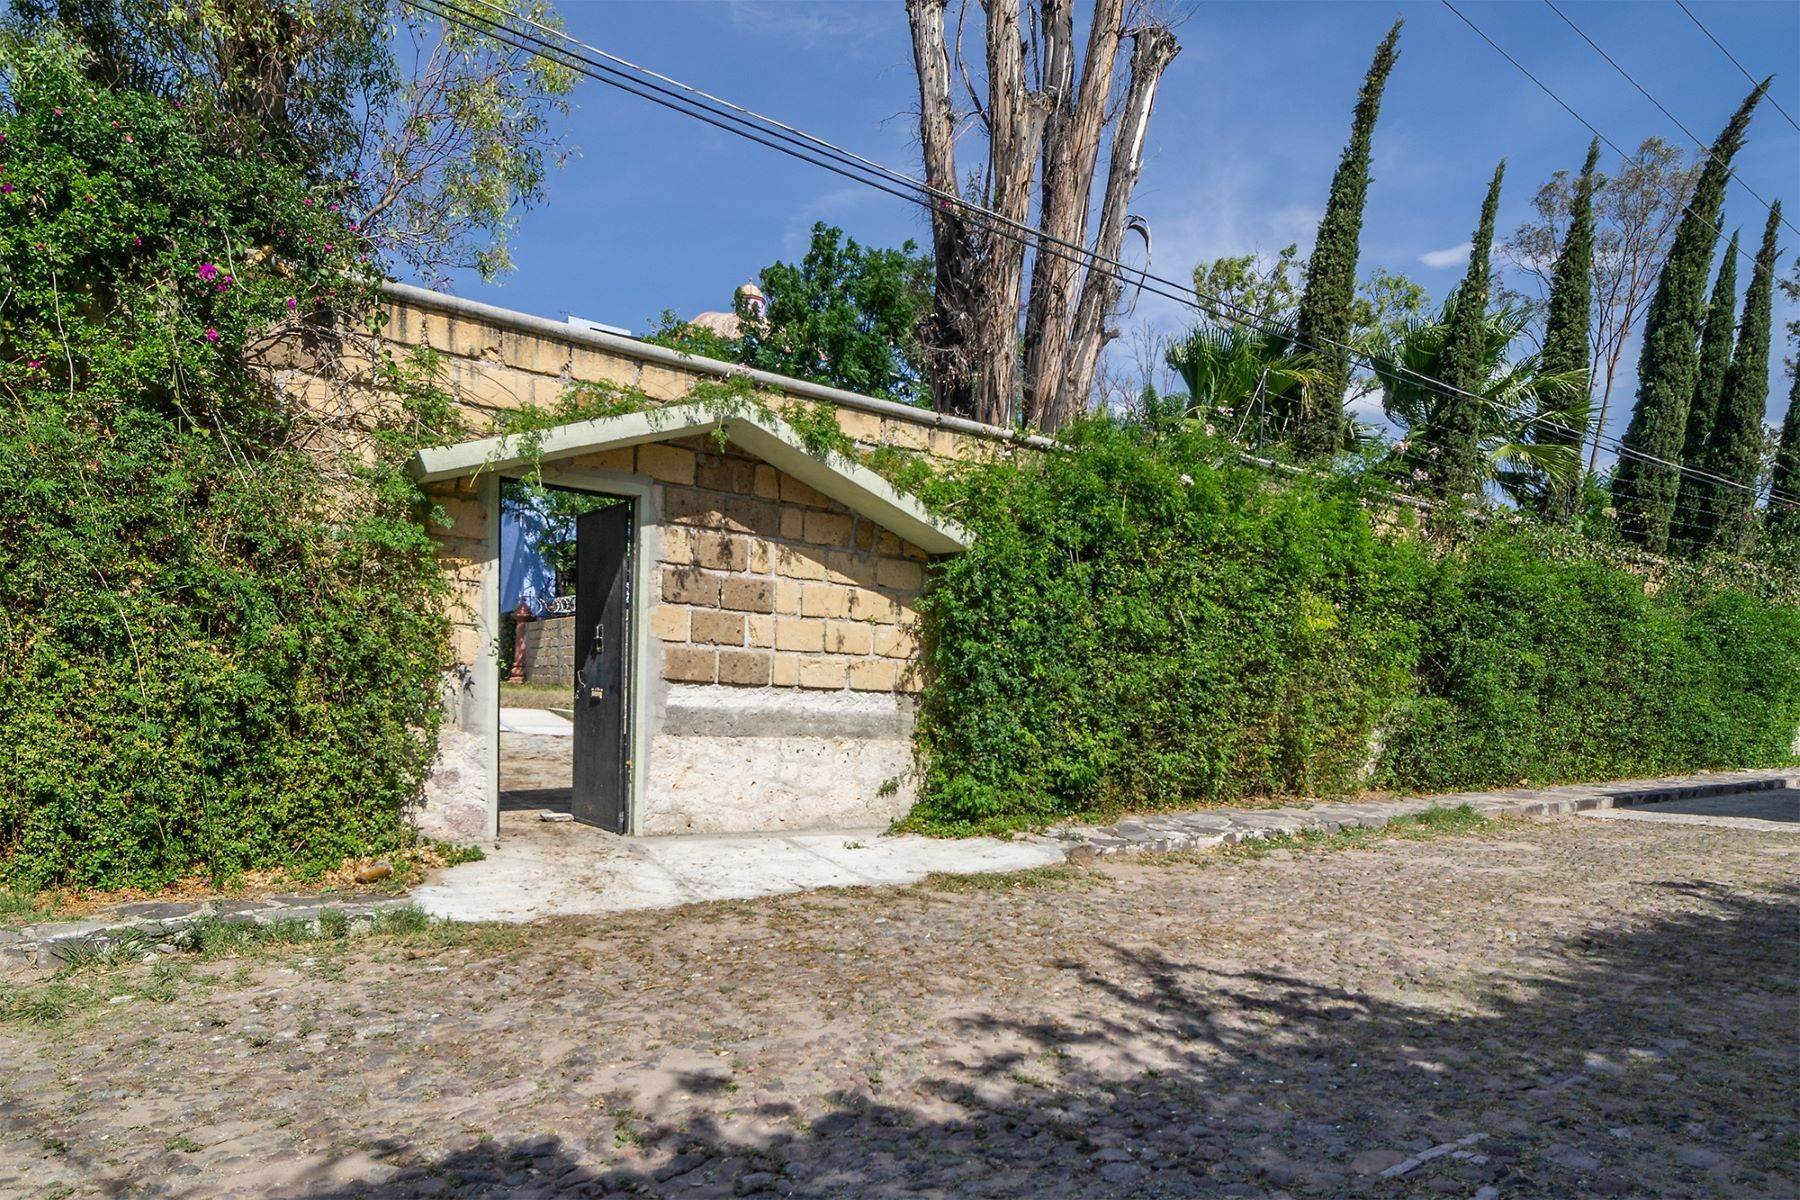 Property for Sale at Lote Pocitos Los Frailes, San Miguel De Allende, Guanajuato Mexico